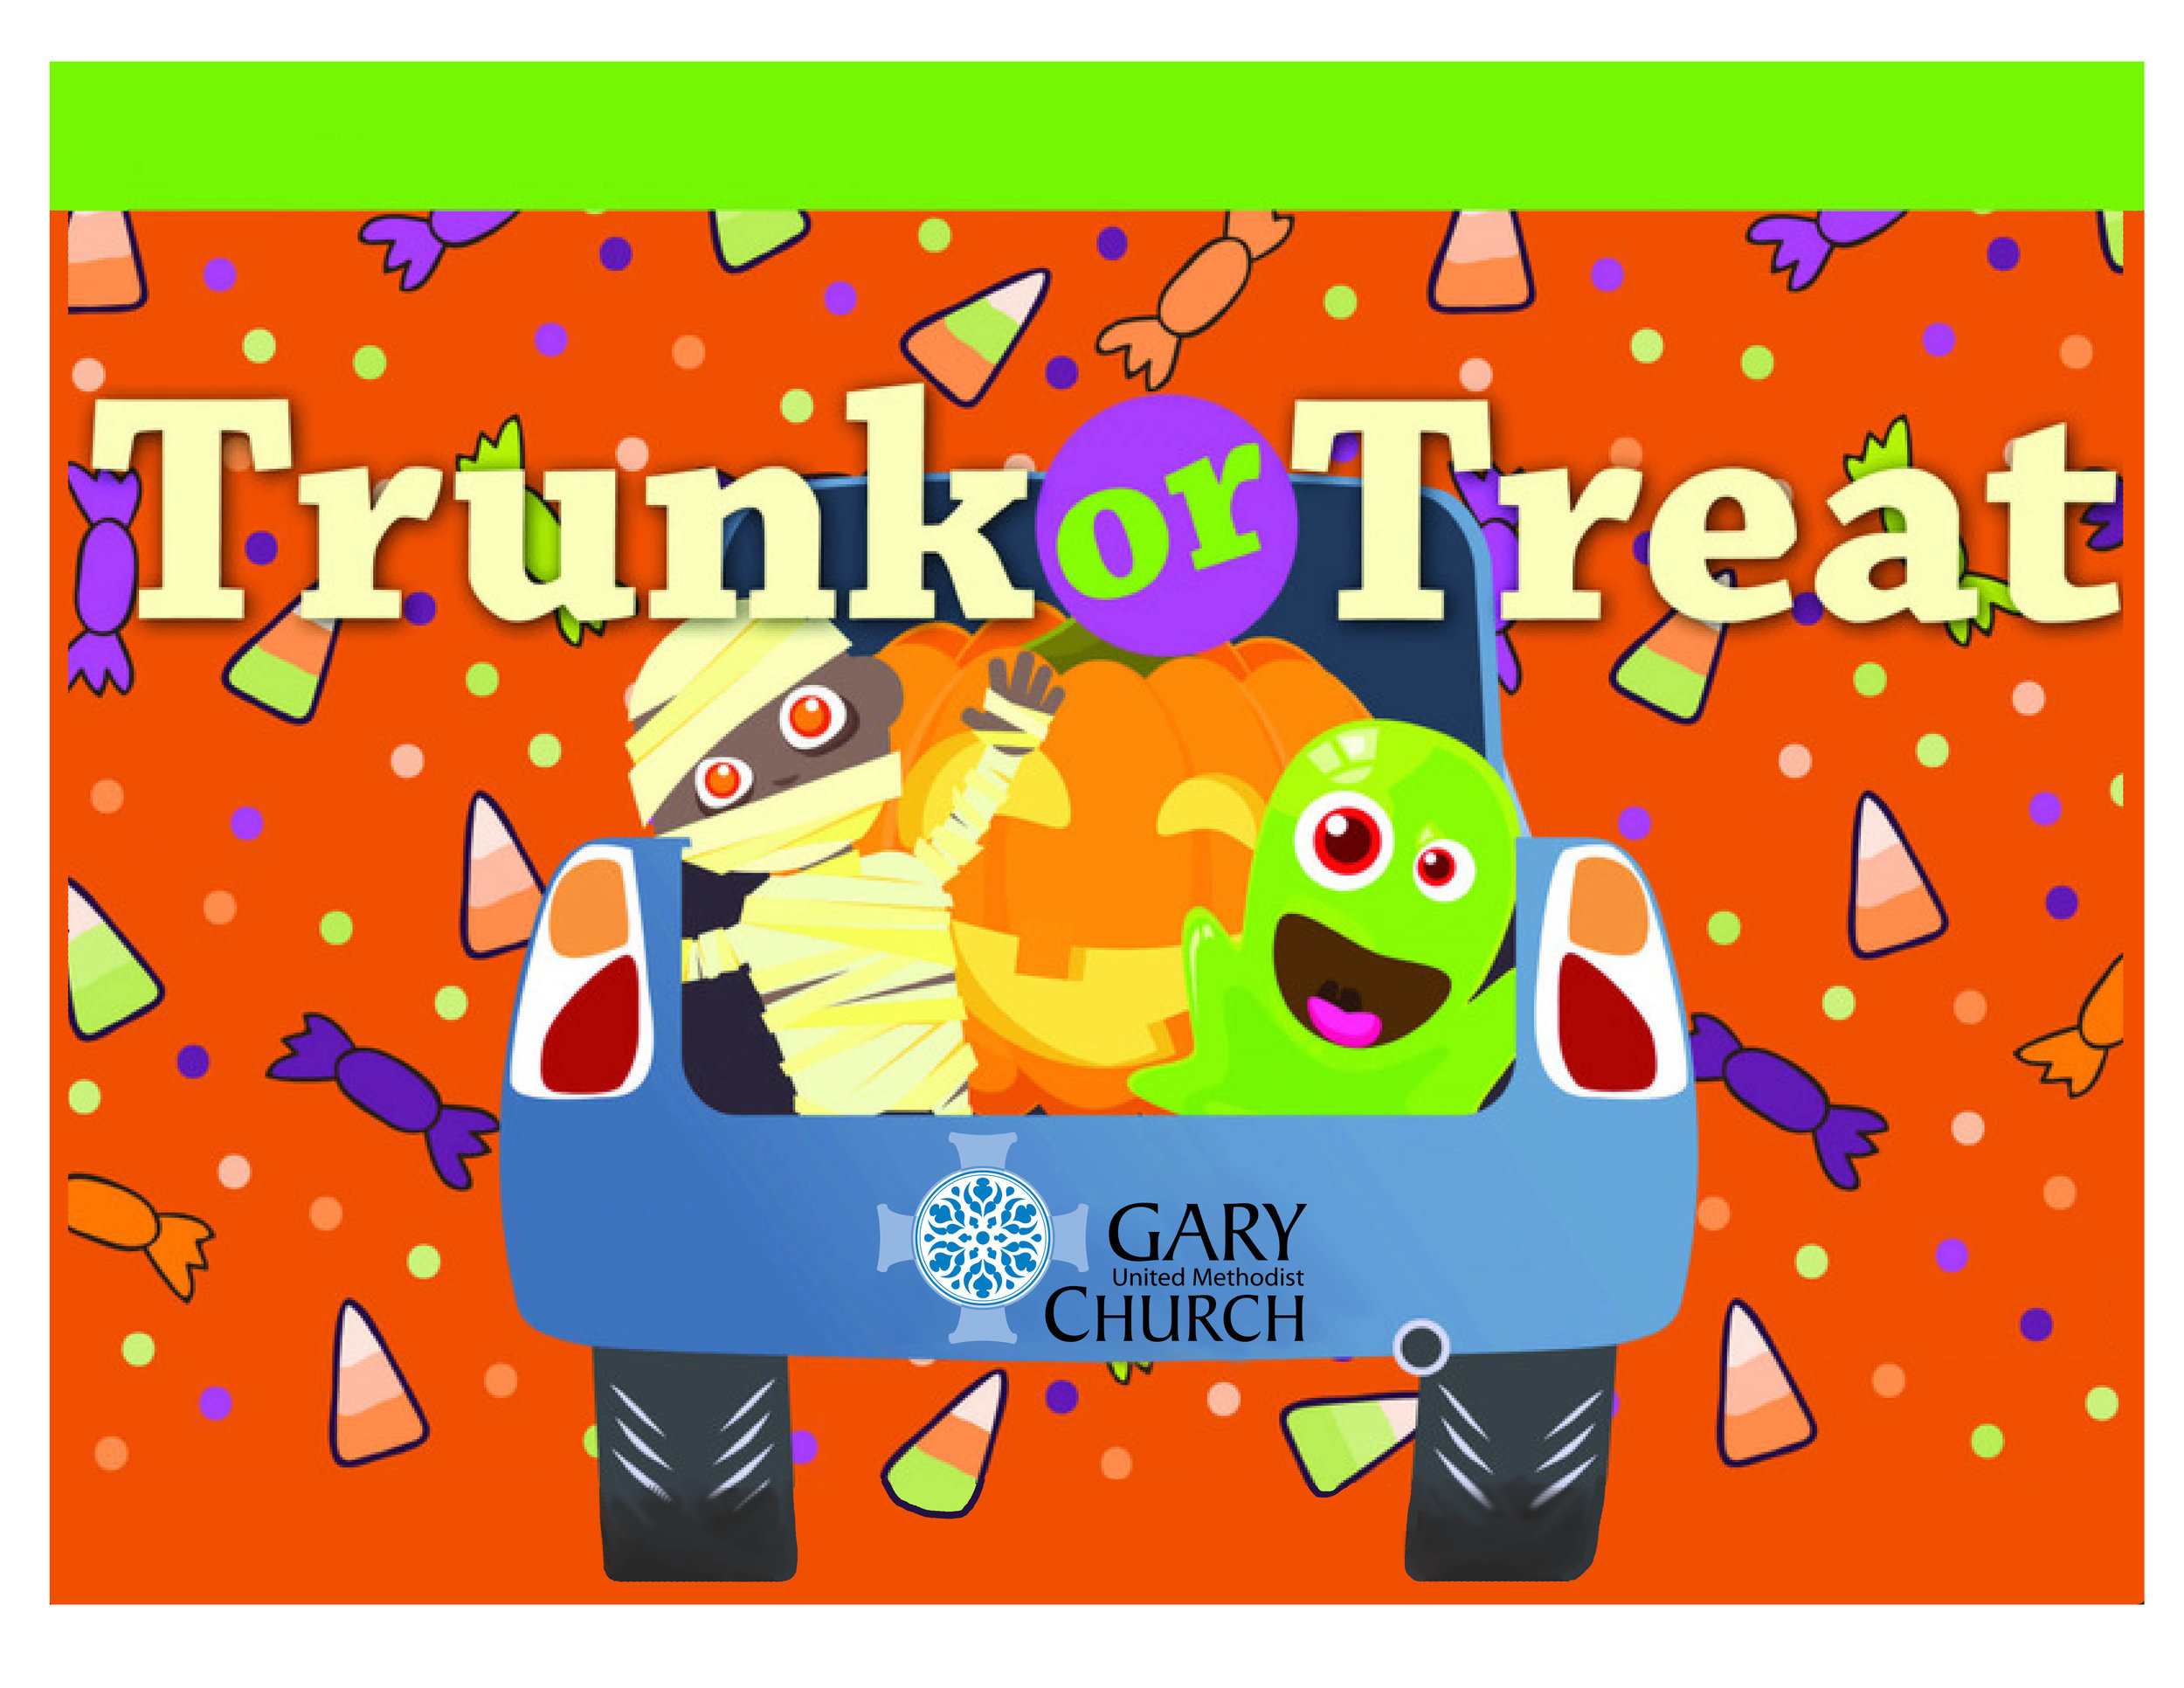 - All are welcome to Trunk or Treat at Gary United Methodist Church!10am - noonKids come in costume, get some treats and vote on the best trunk decor!